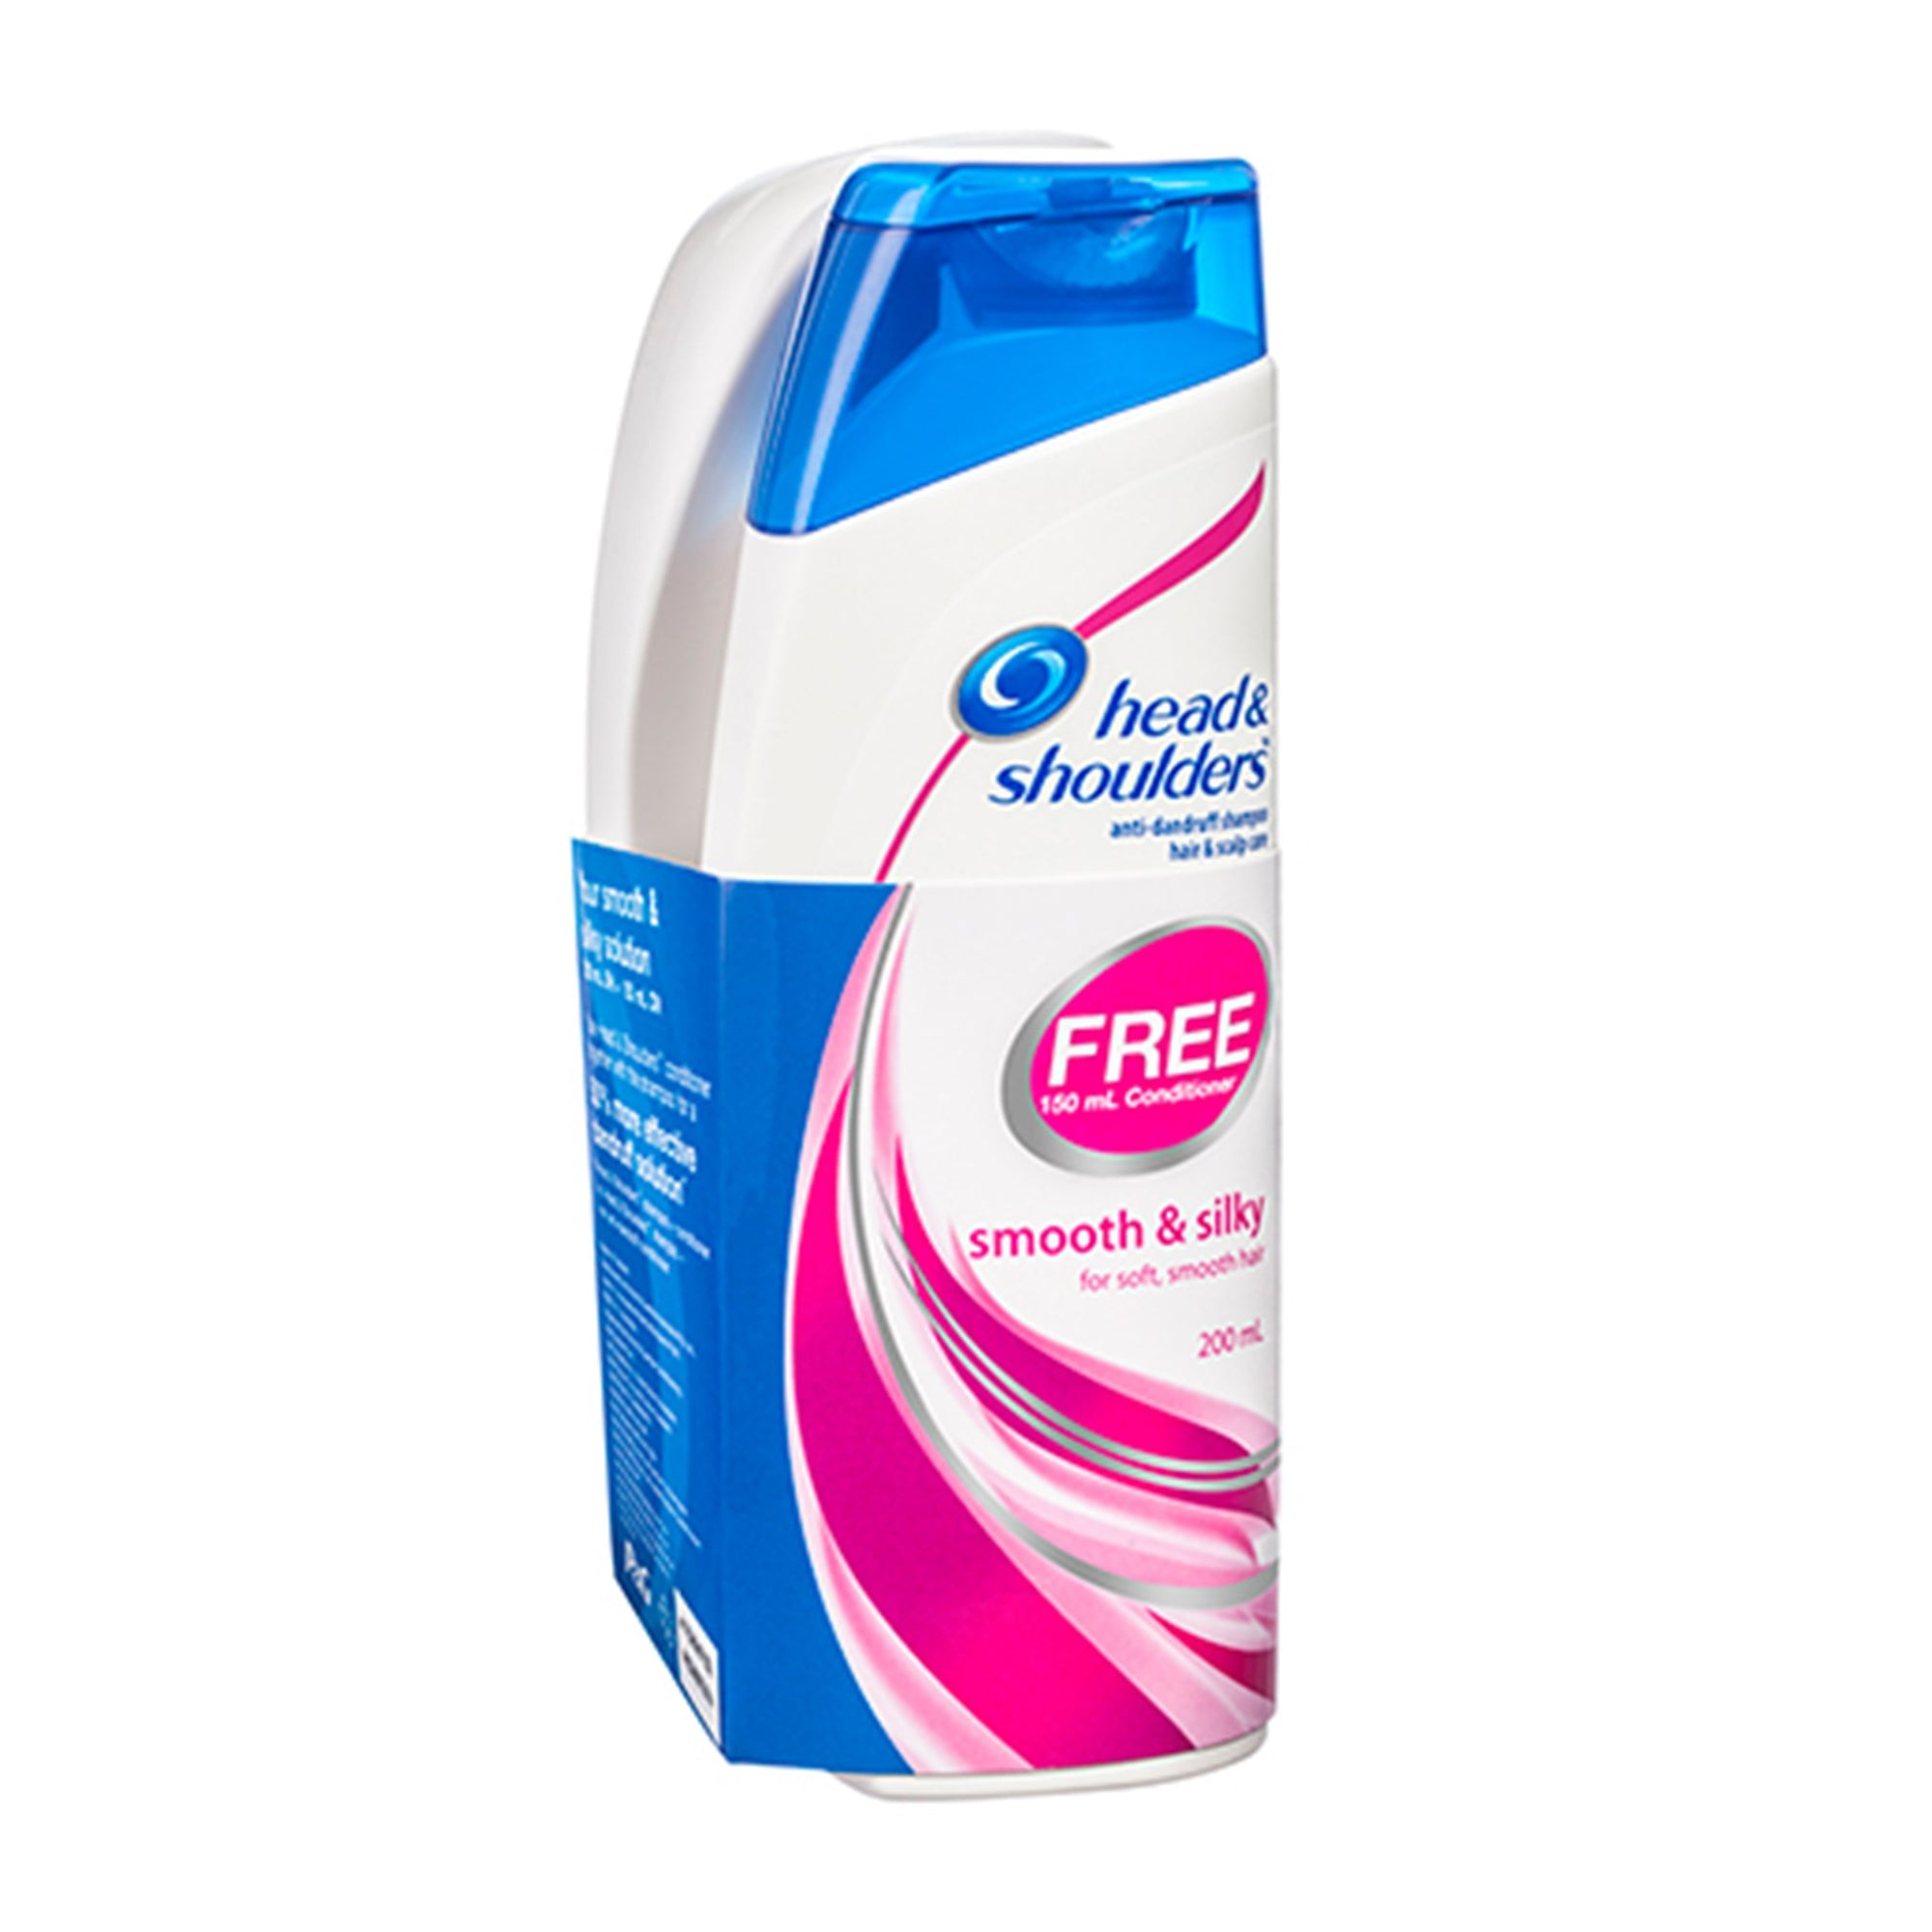 Head & Shoulders Shampoo 200Ml & Conditioner 150Ml Smooth Silky 2Pk